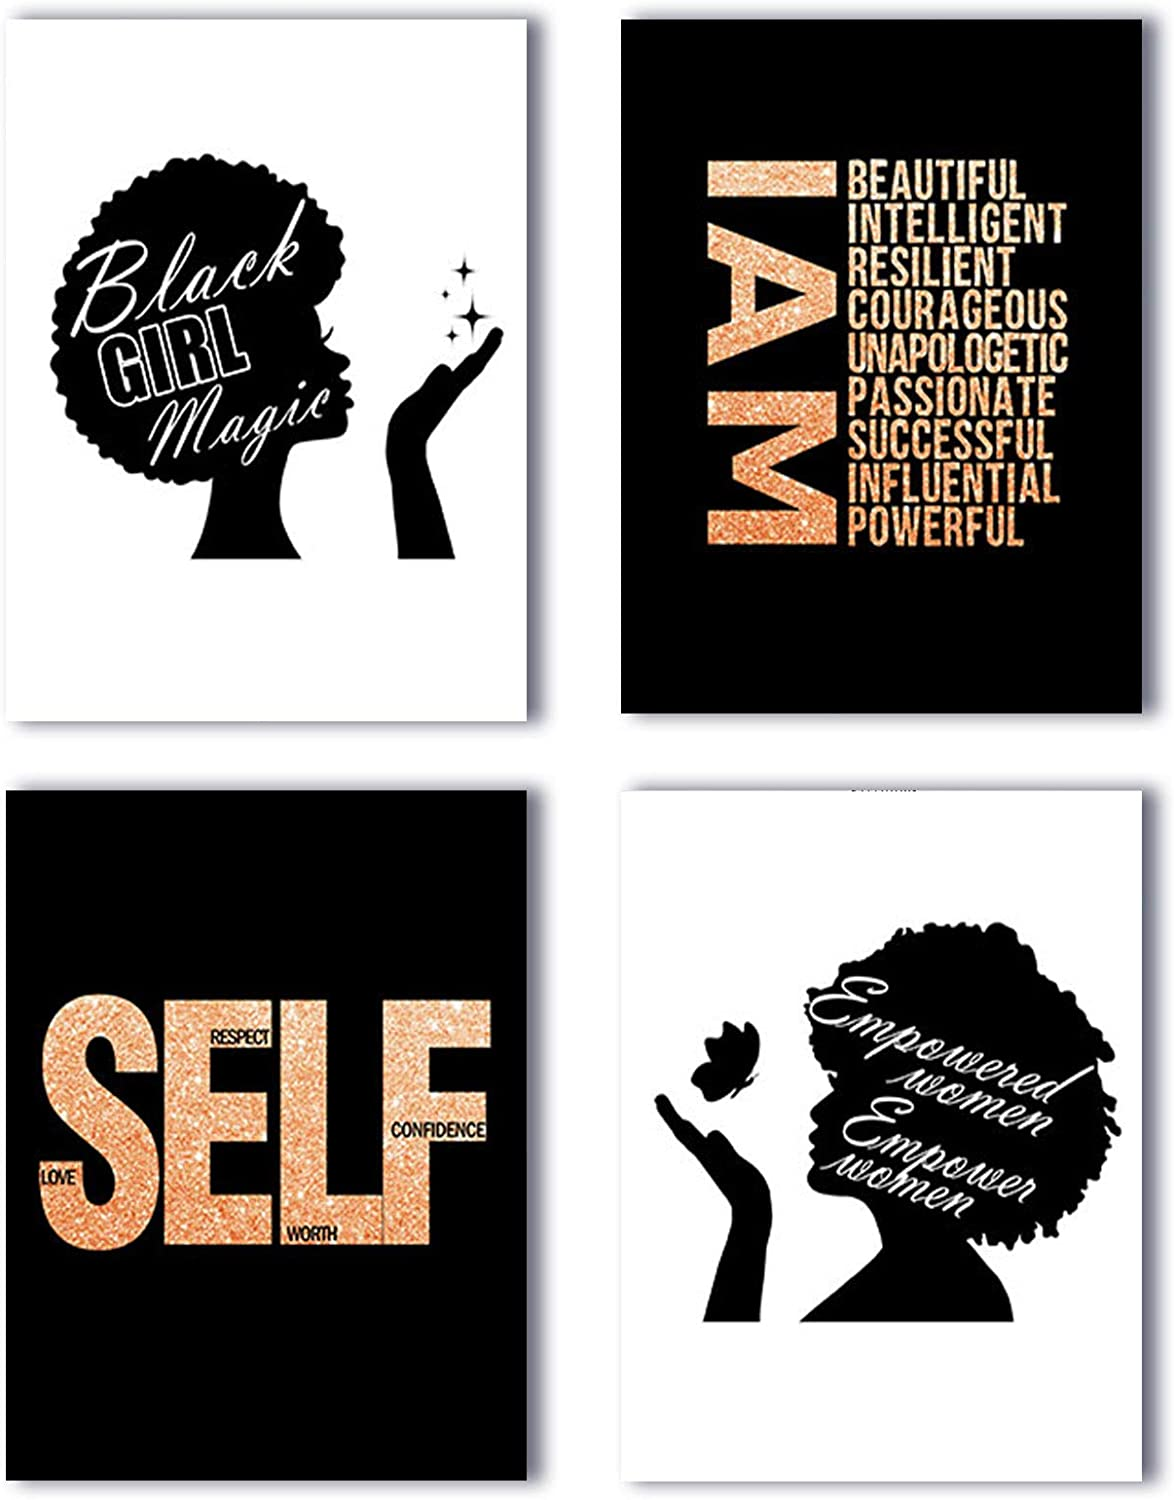 """Modern Aesthetic Inspirational Quotes Black African Woman Girl Wall Art Poster Prints Set of 4 (8""""X10"""" Canvas Picture) Girls Women Bedroom Bathroom Spa Living Room Home Decor Unframed"""